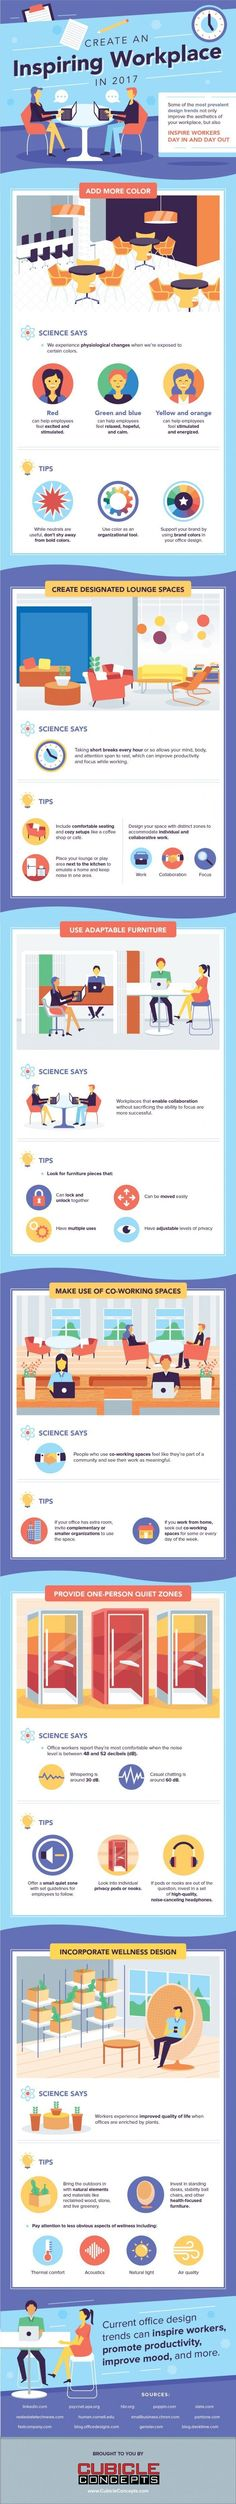 6 Design Tips to Create an Inspiring Office Space - Small Business Trends Georgian Architecture, Architecture Design, Small Business Trends, Business Design, Contemporary Style Homes, Victorian Design, Data Charts, Co Working, Working Woman